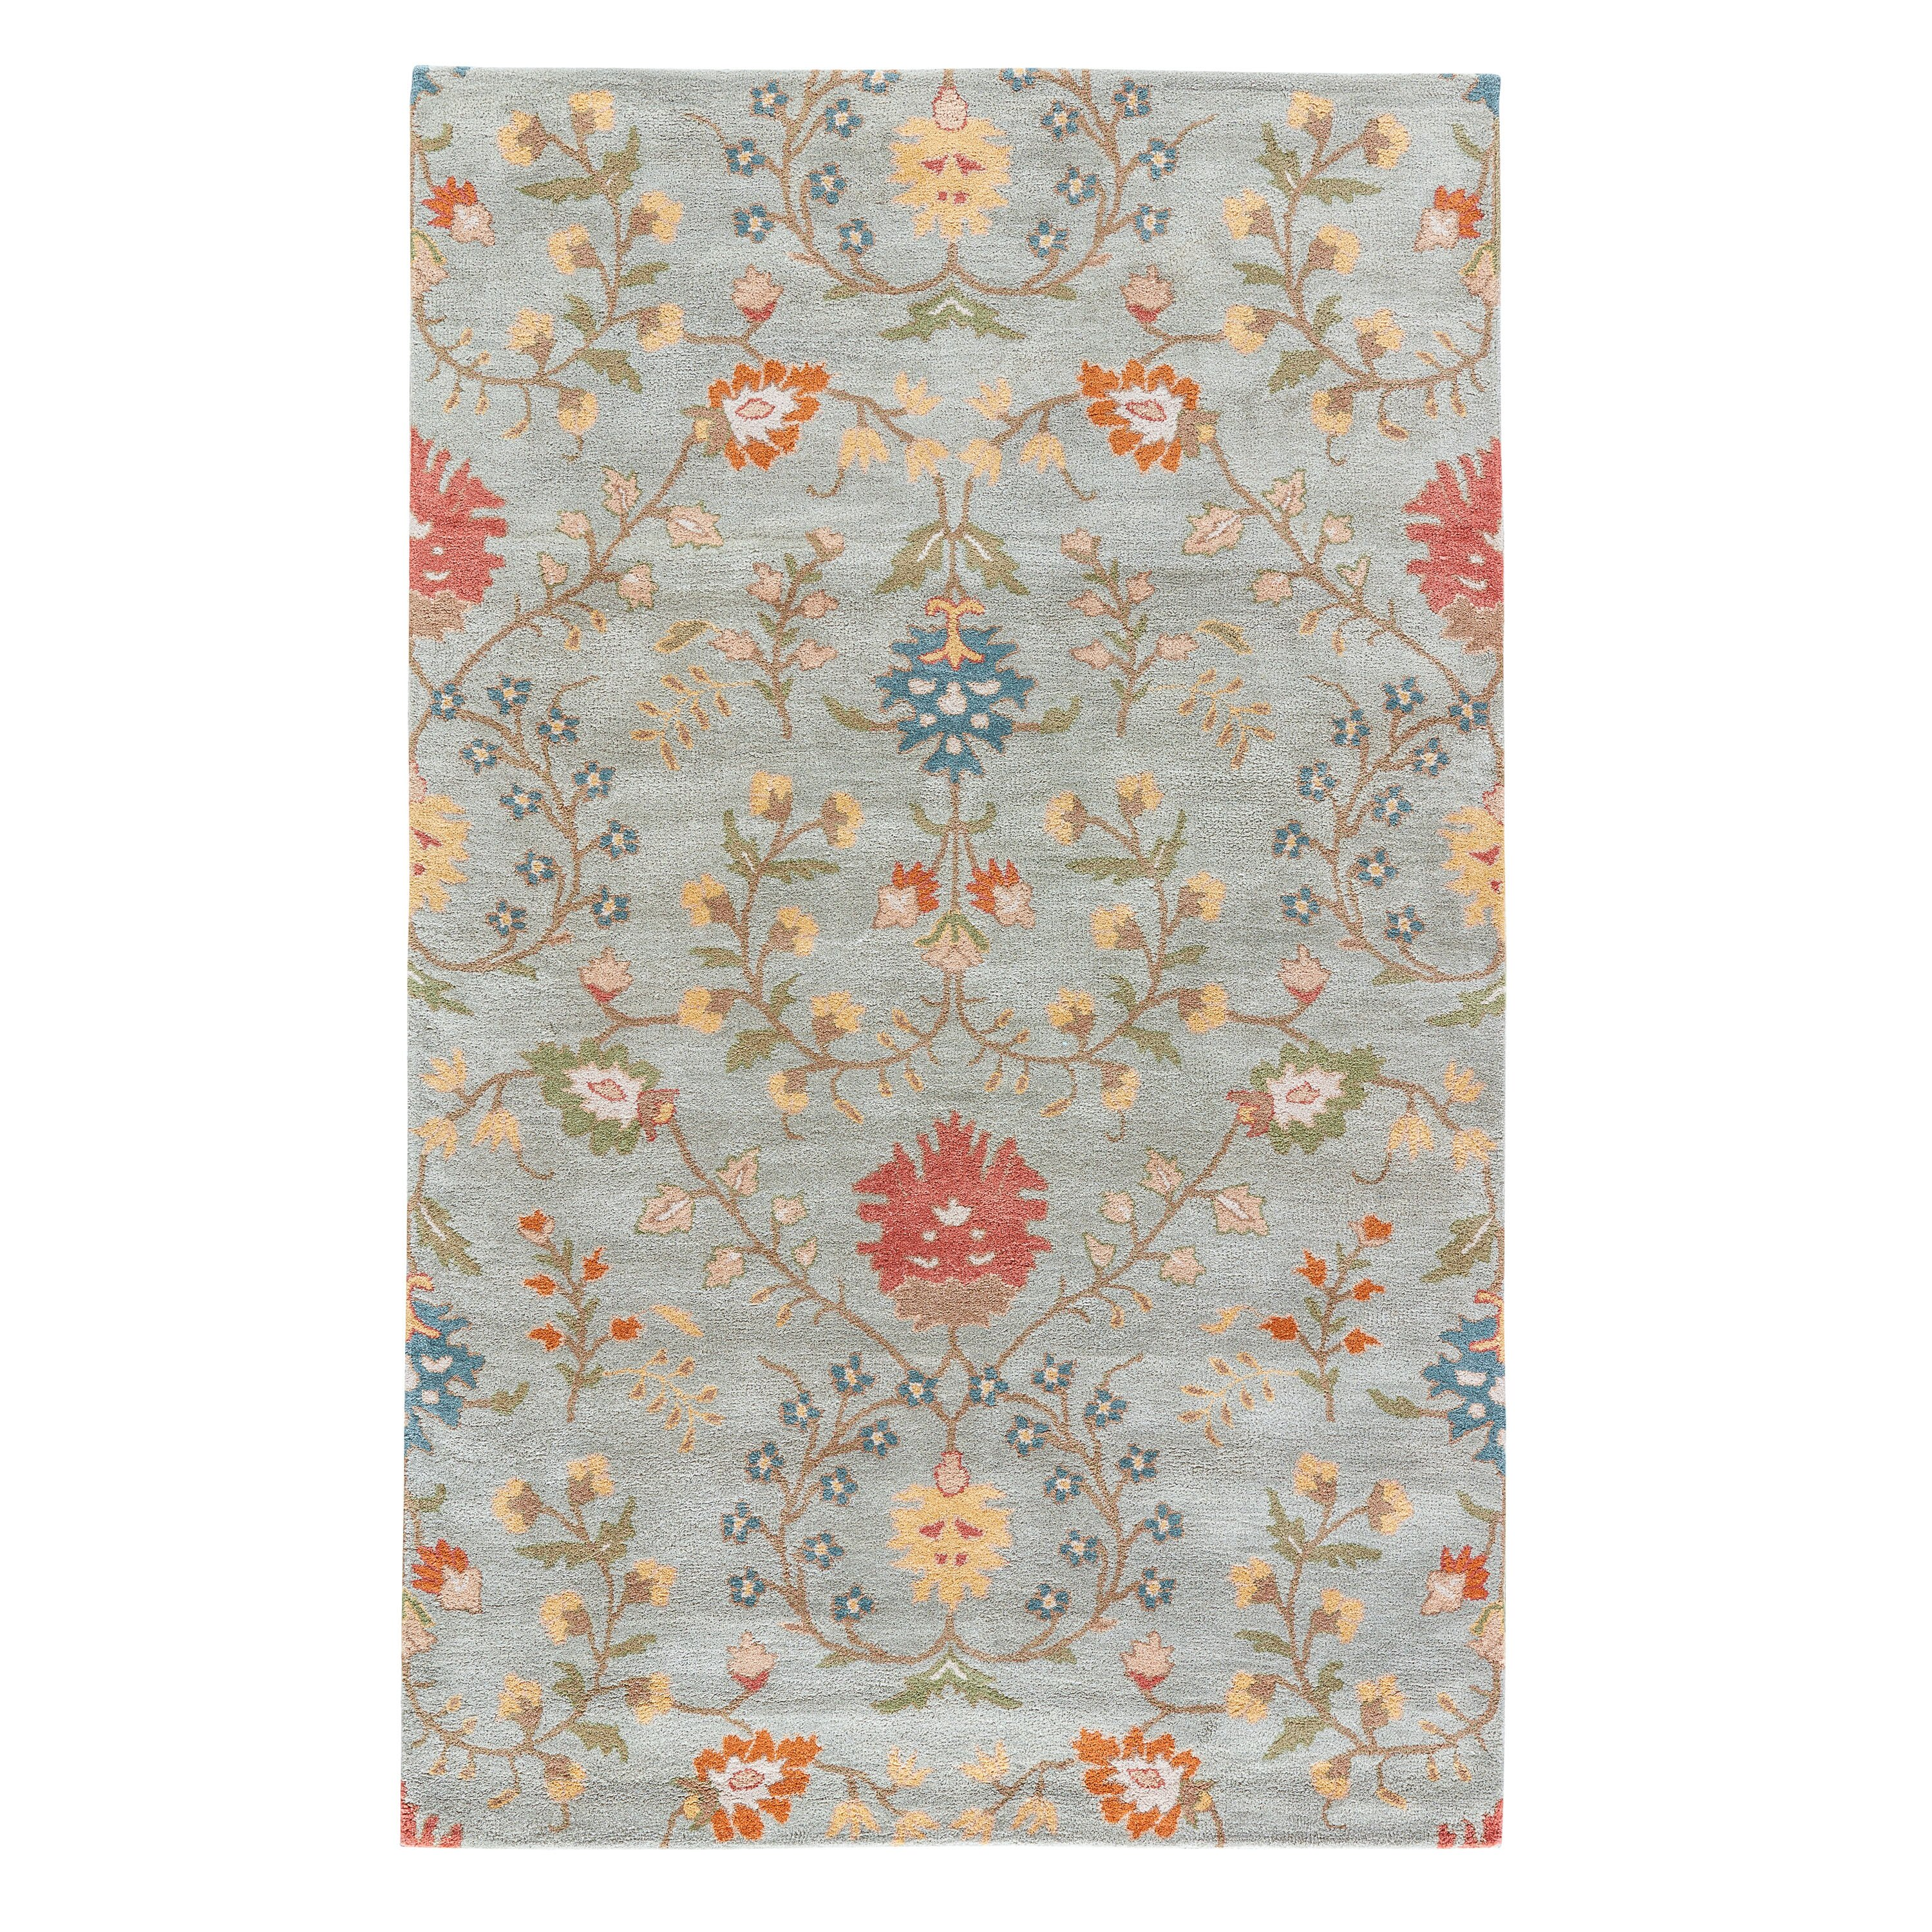 Floral Wool Rugs Home Decor